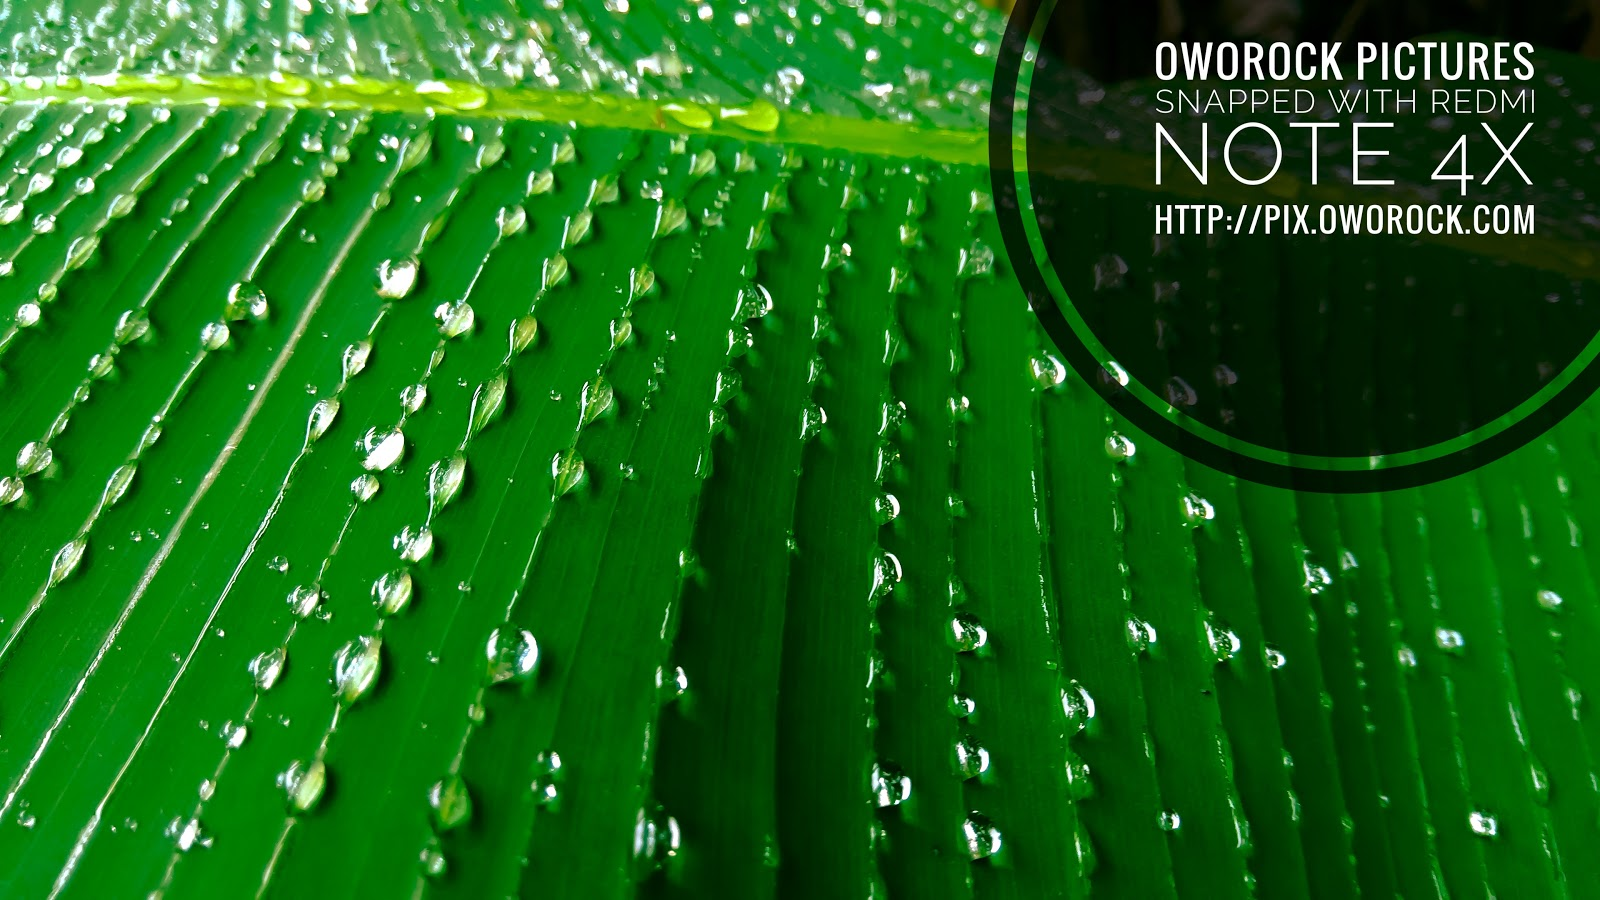 Drop of rain water on a plantain leaf, banana leaf